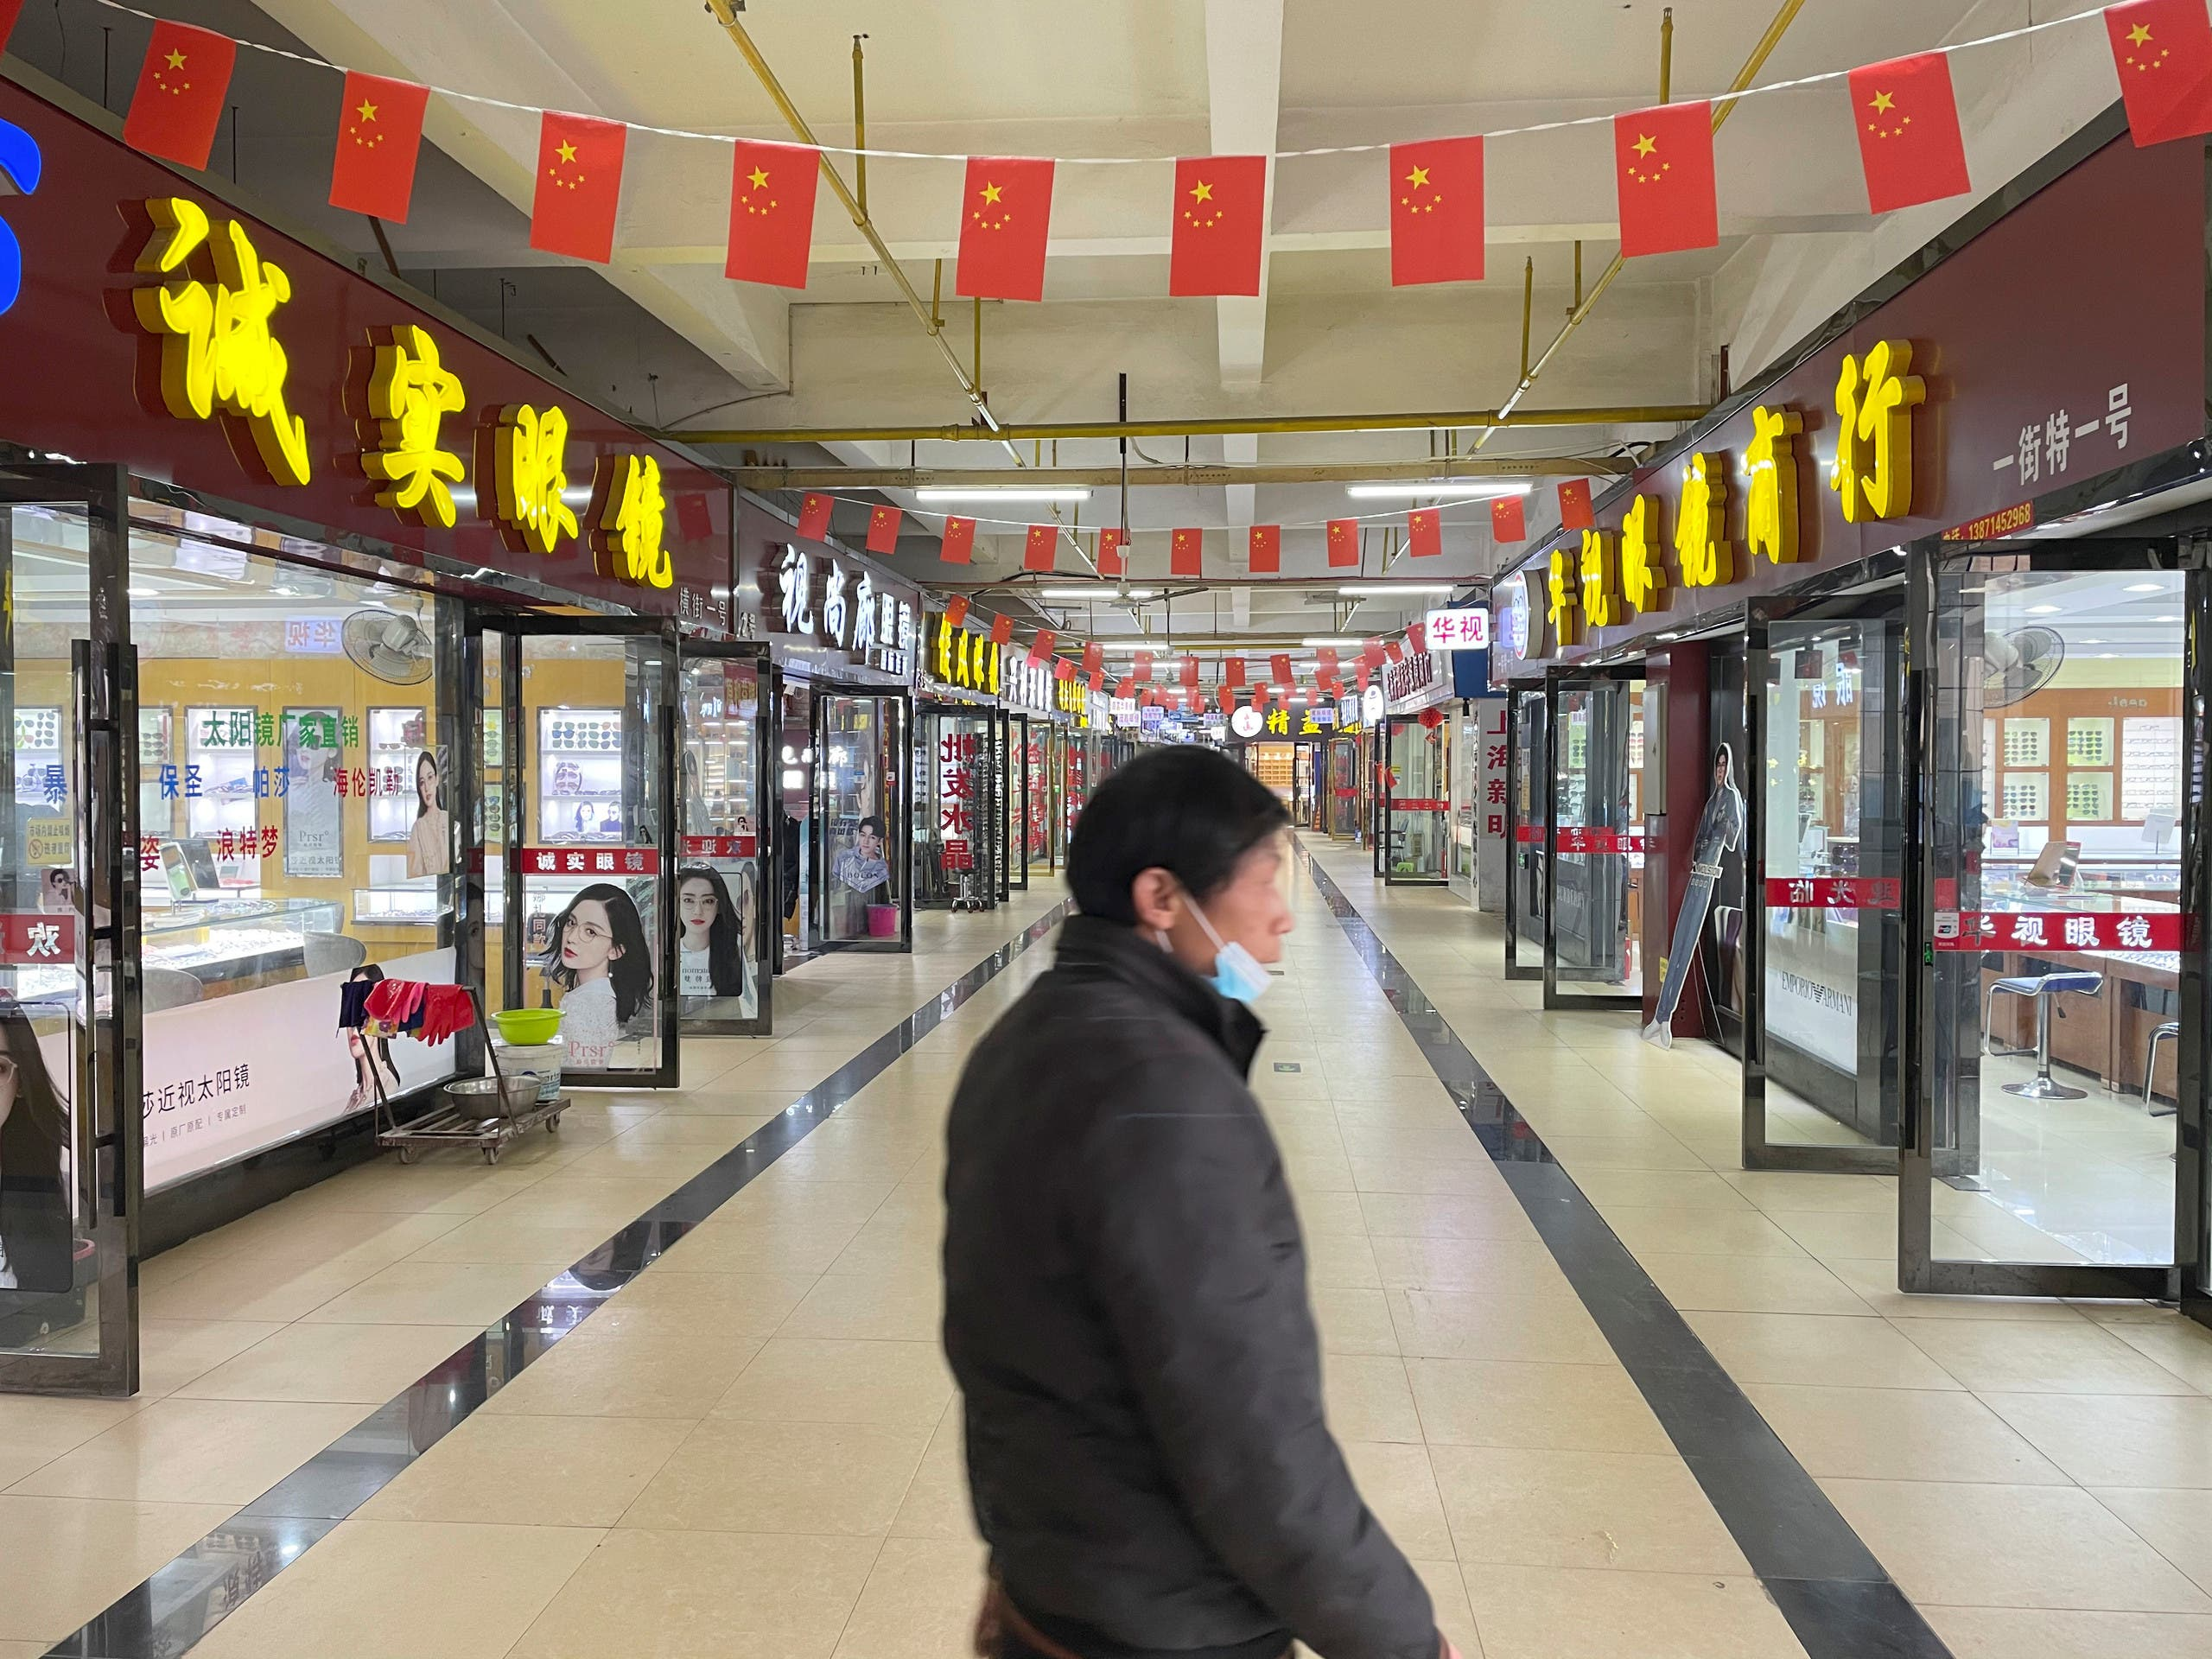 Shops are seen ope almost a year after the start of the coronavirus outbreak, in Wuhan, Hubei province. (File photo: Reuters)